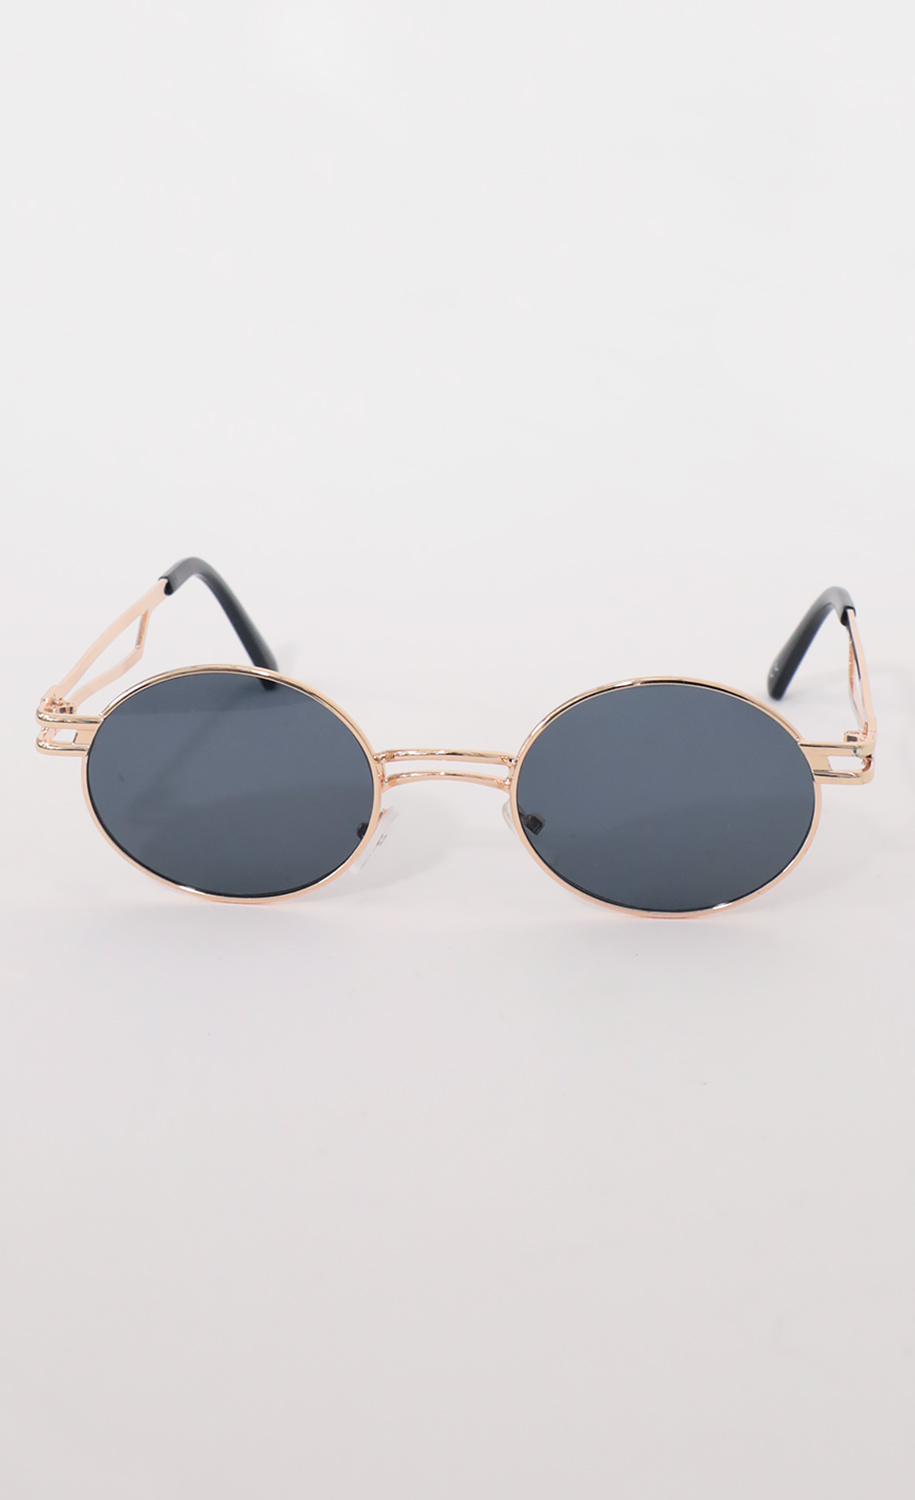 Metal Double Temple Accent Oval Round Gold Sunglasses in Smoke